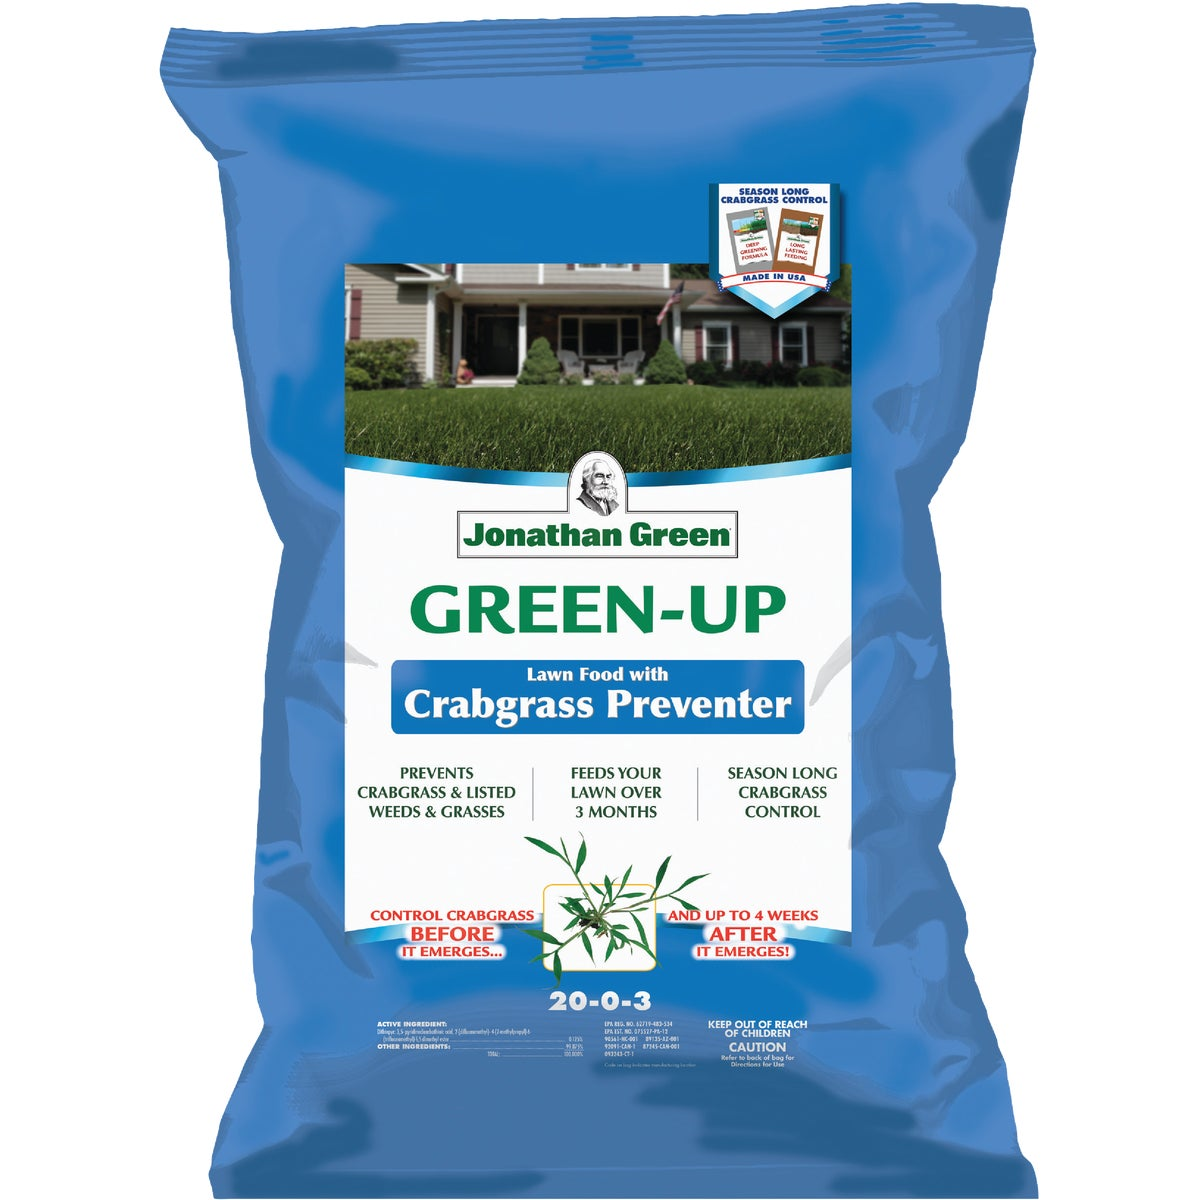 15M CRABGRASS PREVENTER - 10459 by Jonathan Green